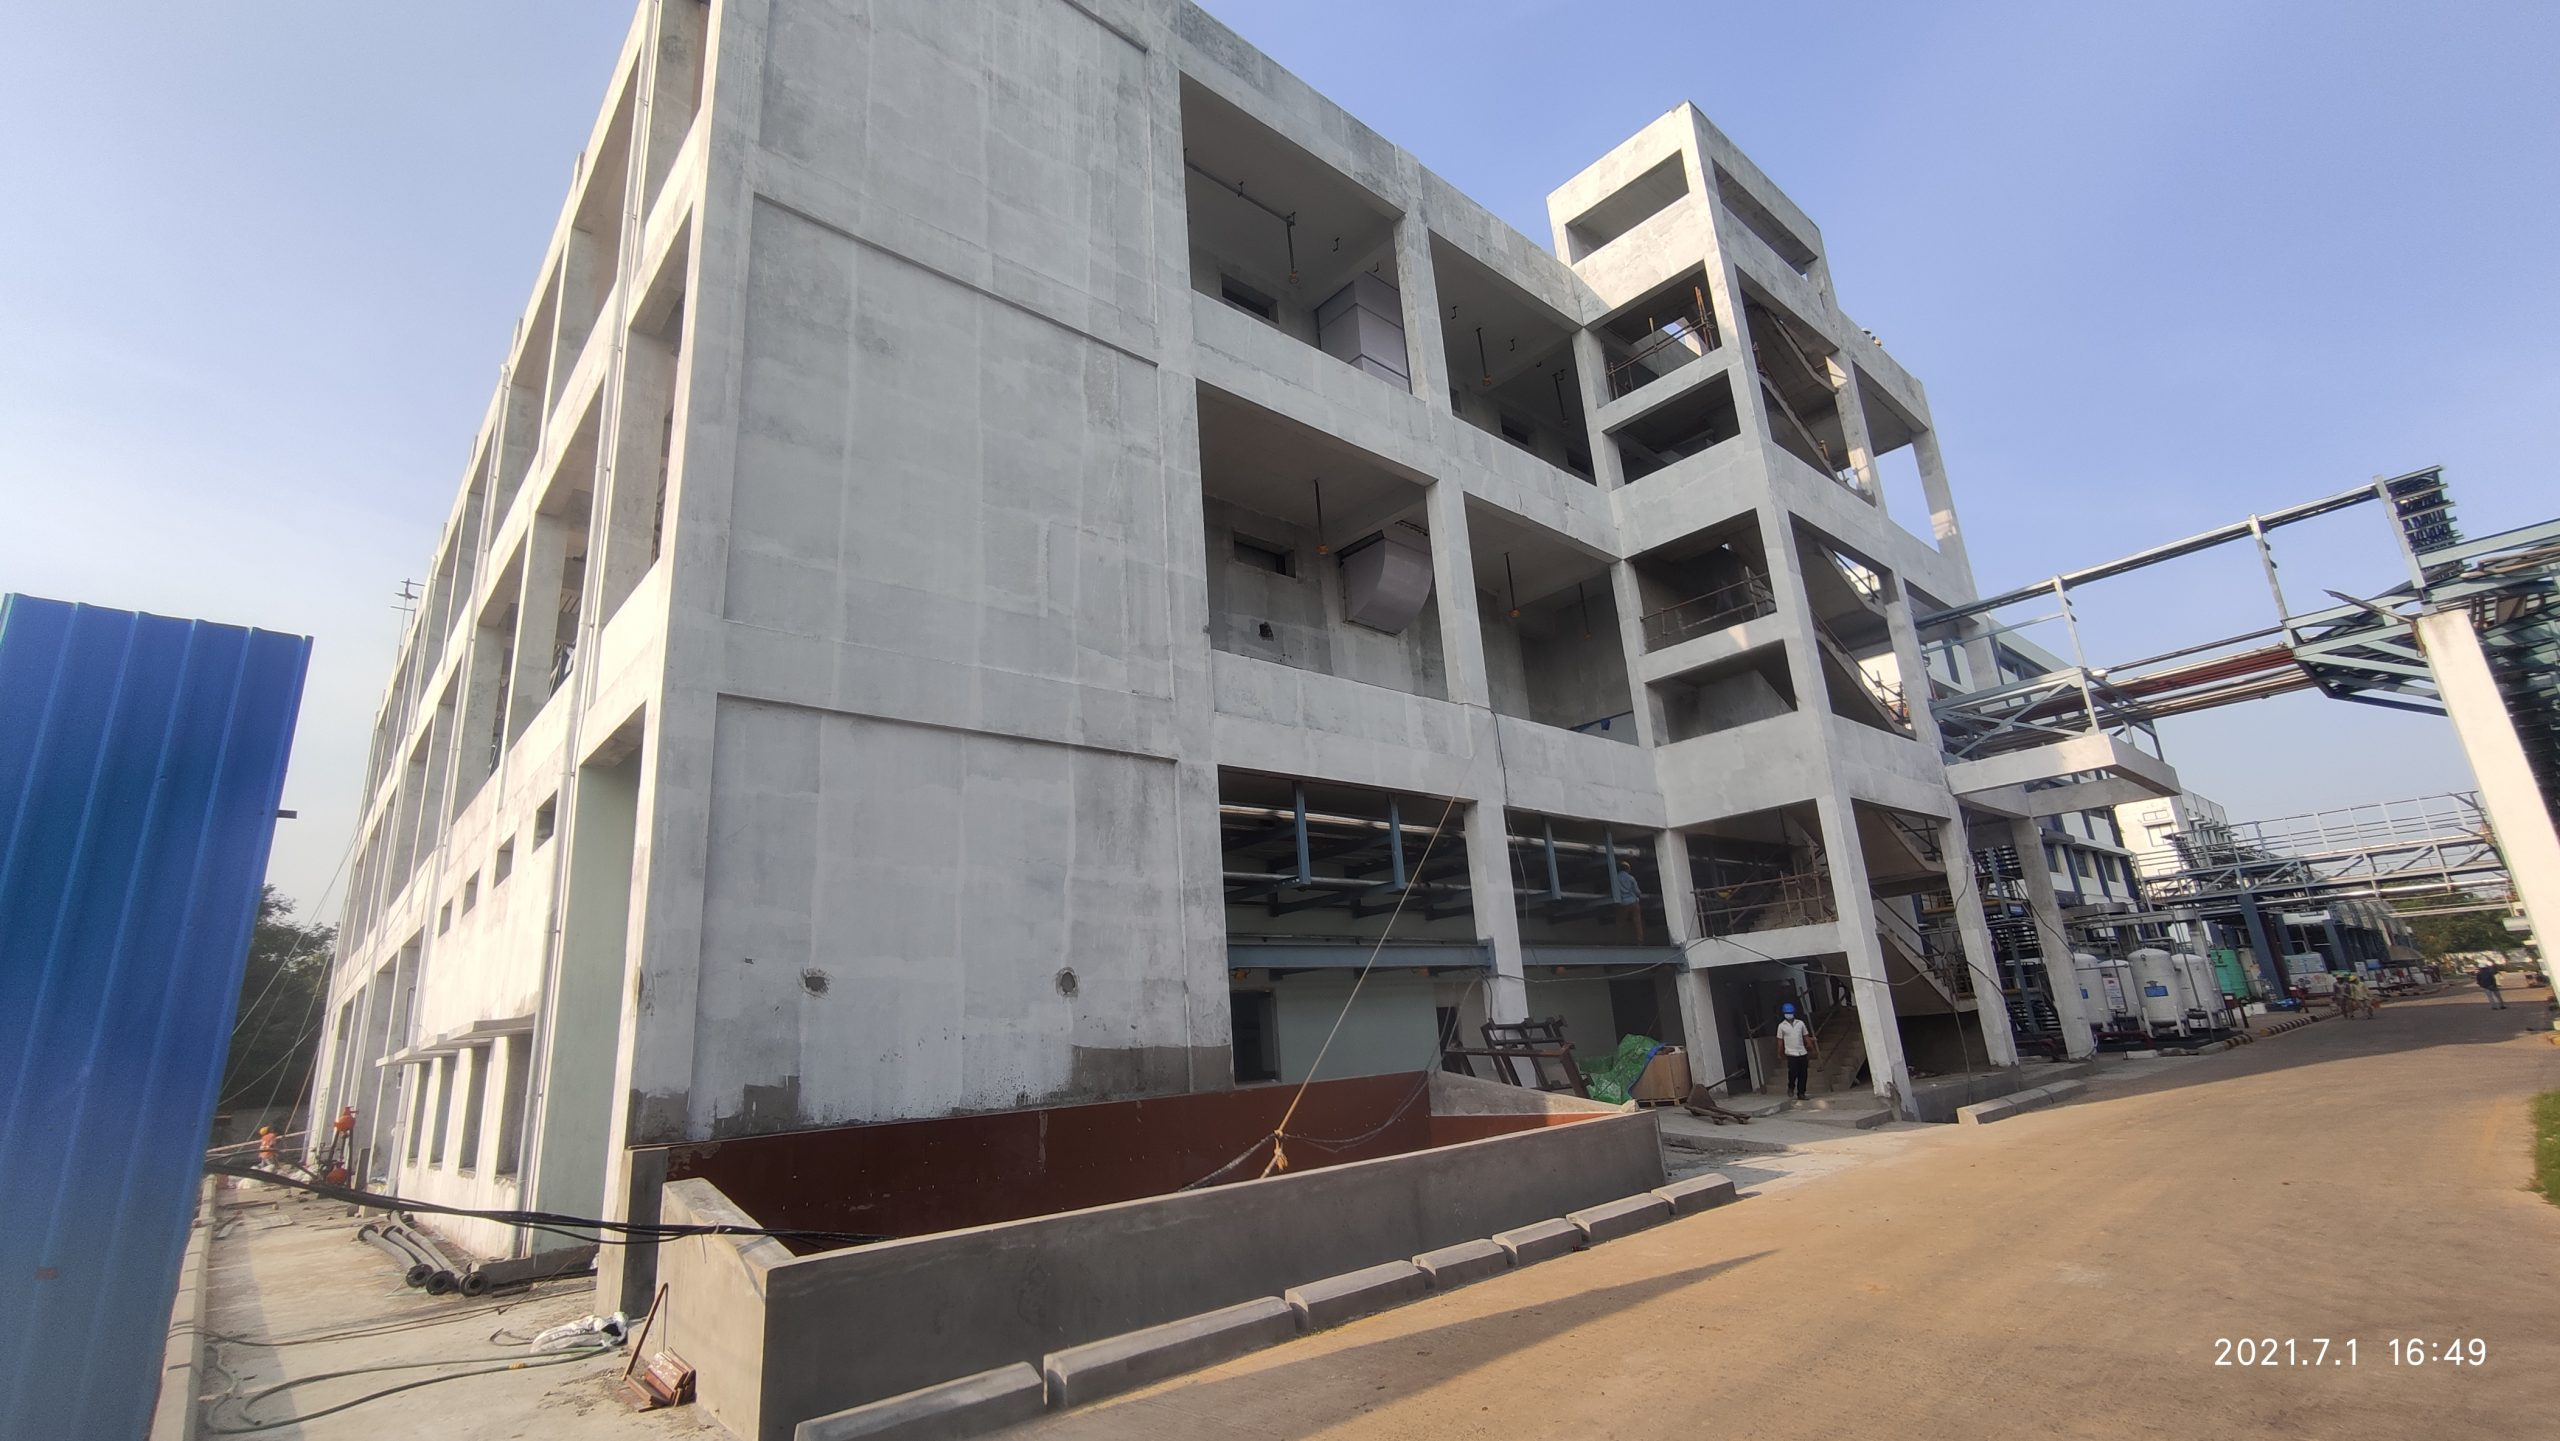 Update on 5-ASA New Project in Vizag (India)